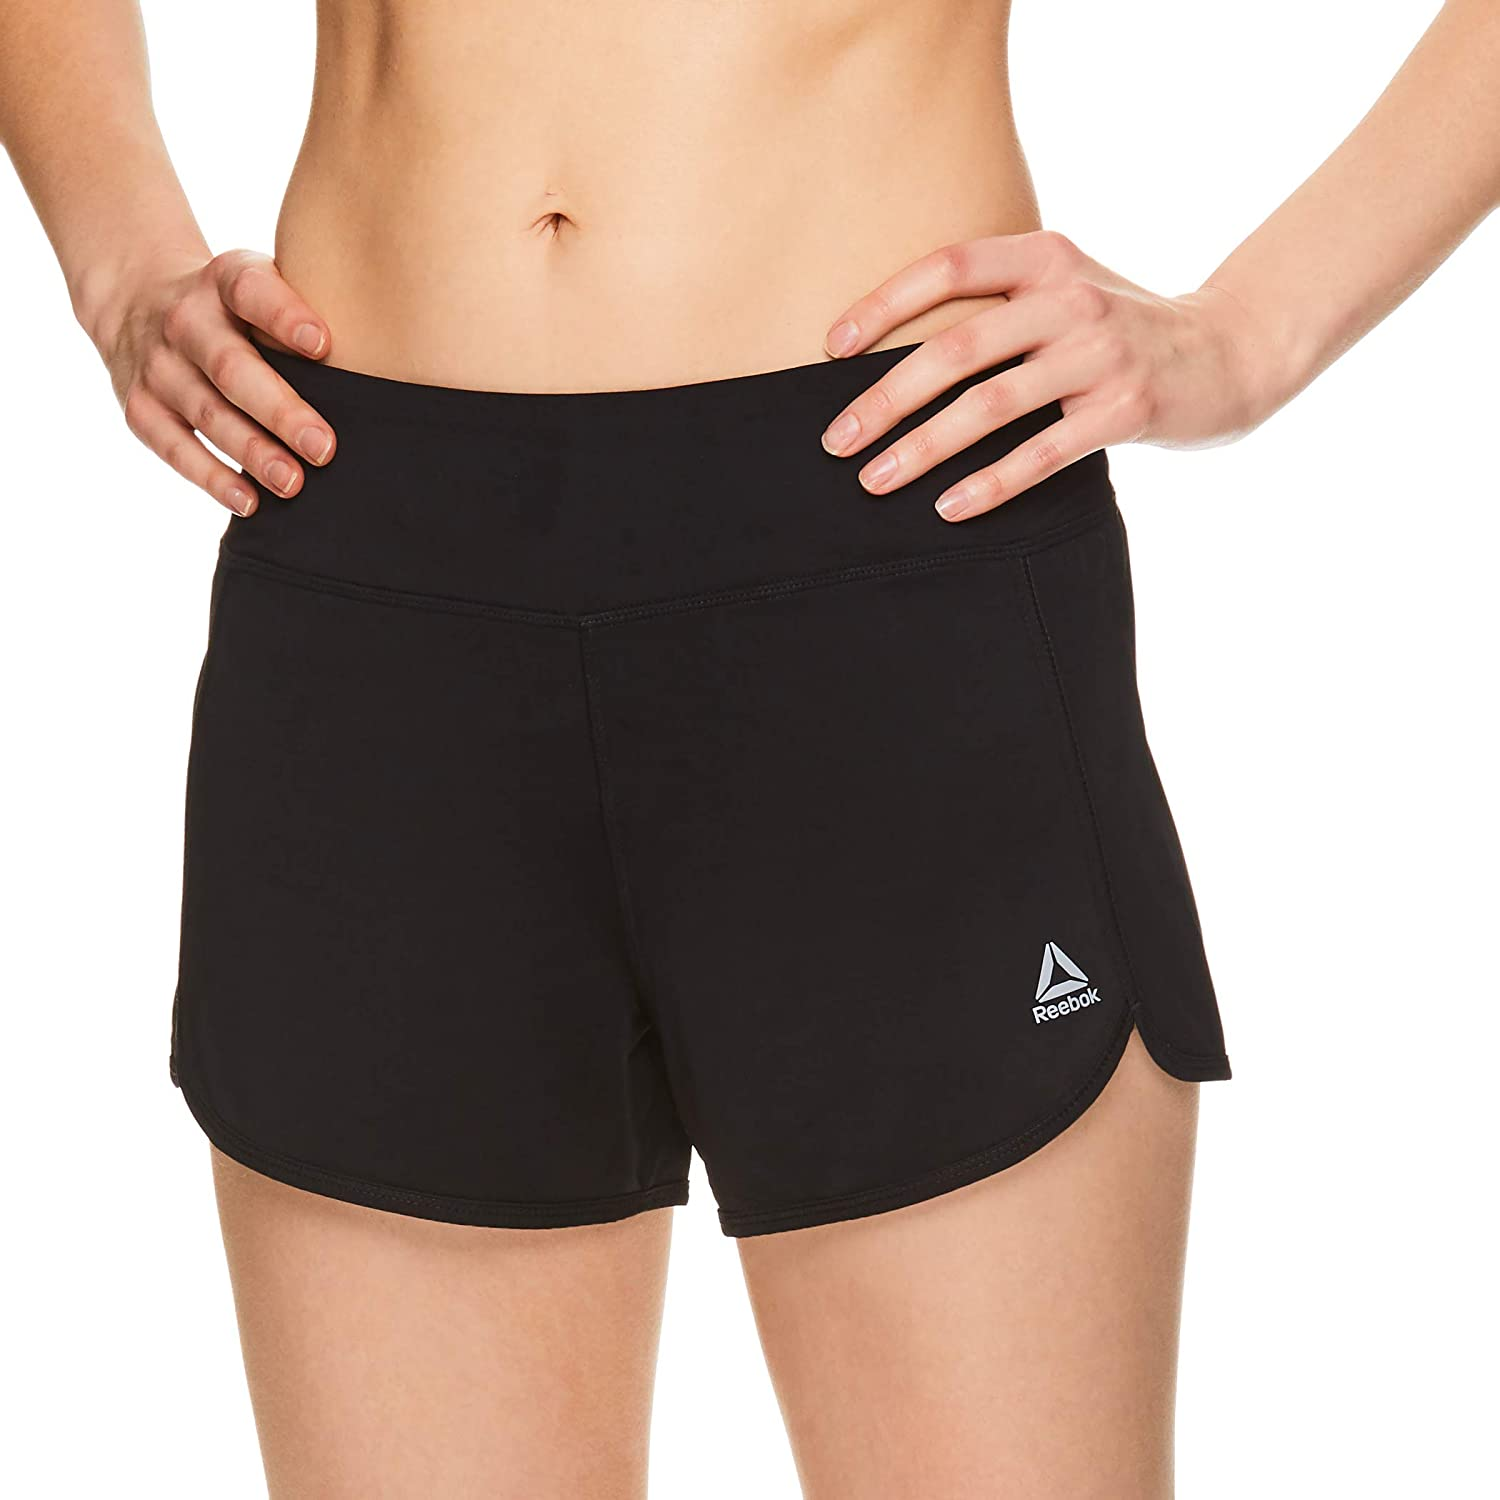 Reebok Workout Ready Shorts Womens Bottoms Lightweight Drawcord Mid-Rise Ladies